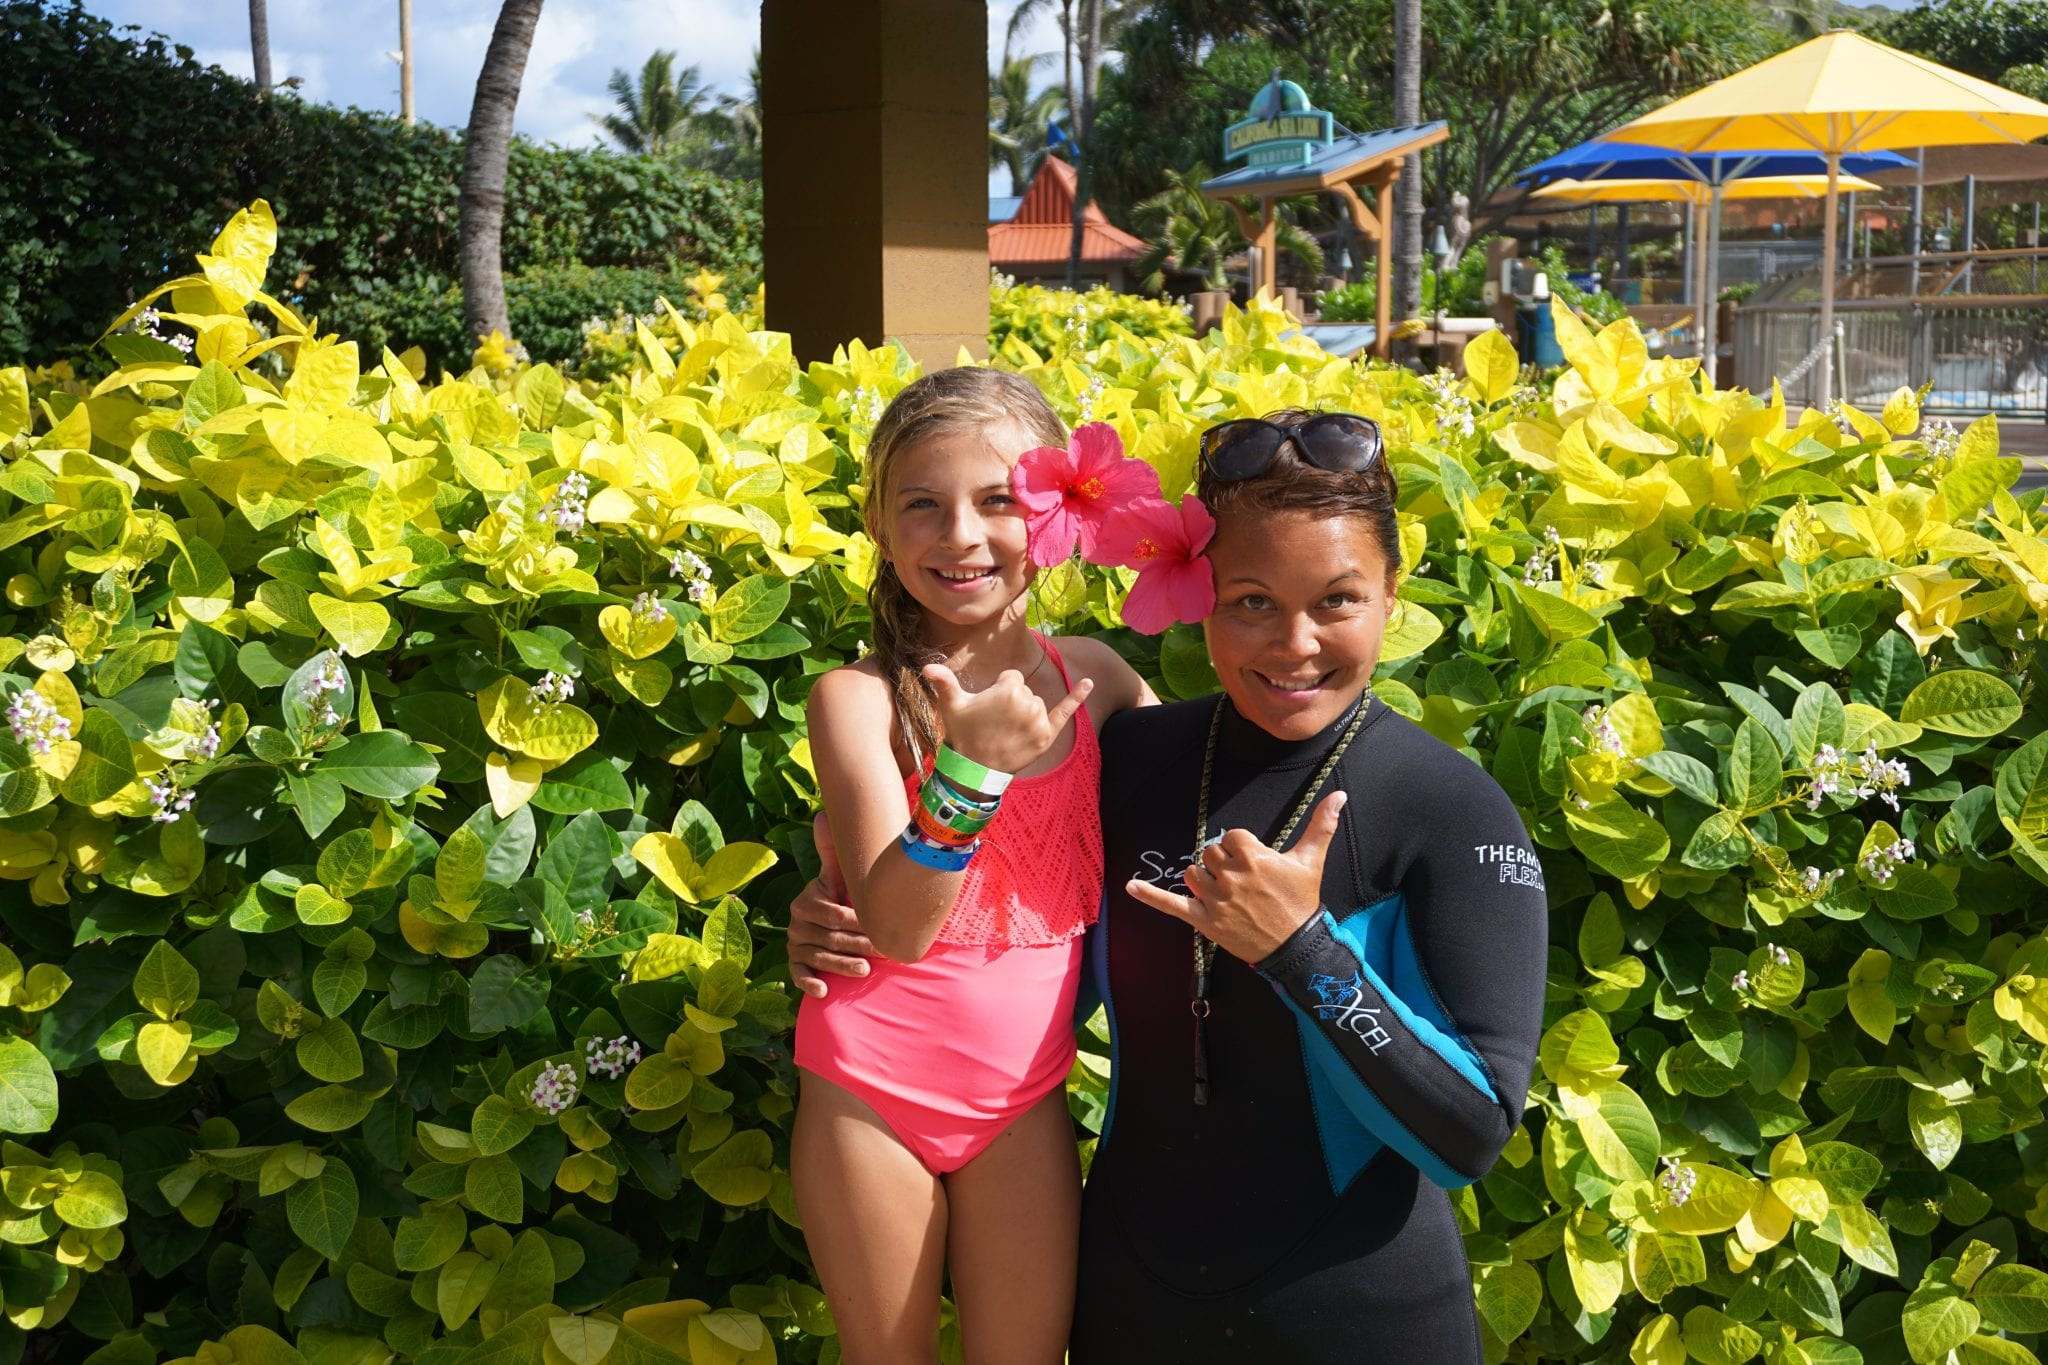 The Best Things To Do In Oahu with kids [25 amazing activities]